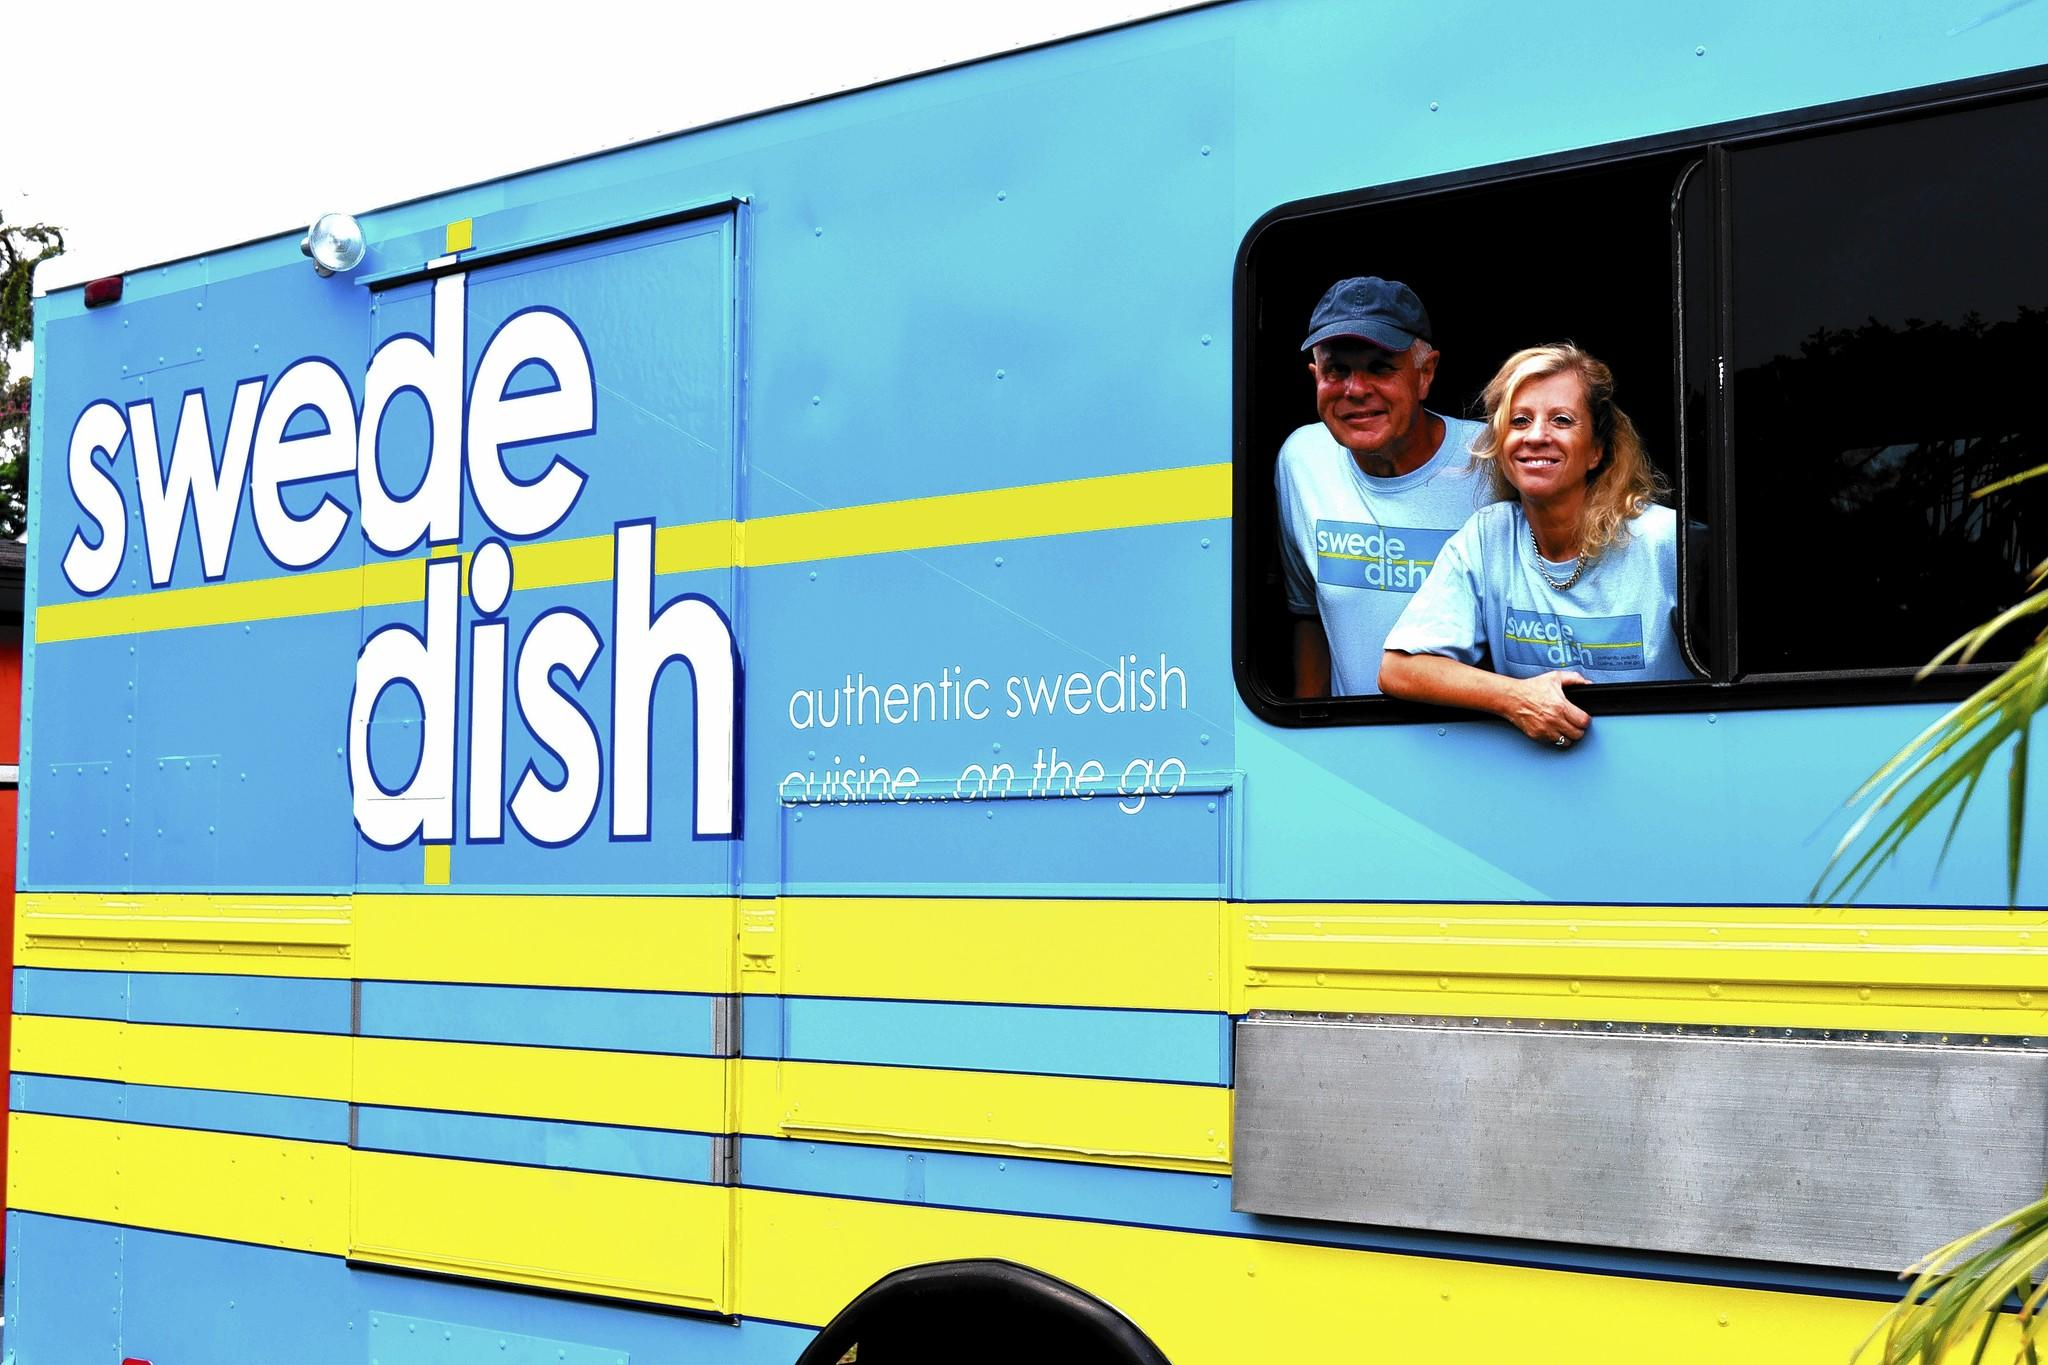 Follow the SWEDEdish food truck at swededishfoodtruck.com and on Facebook.